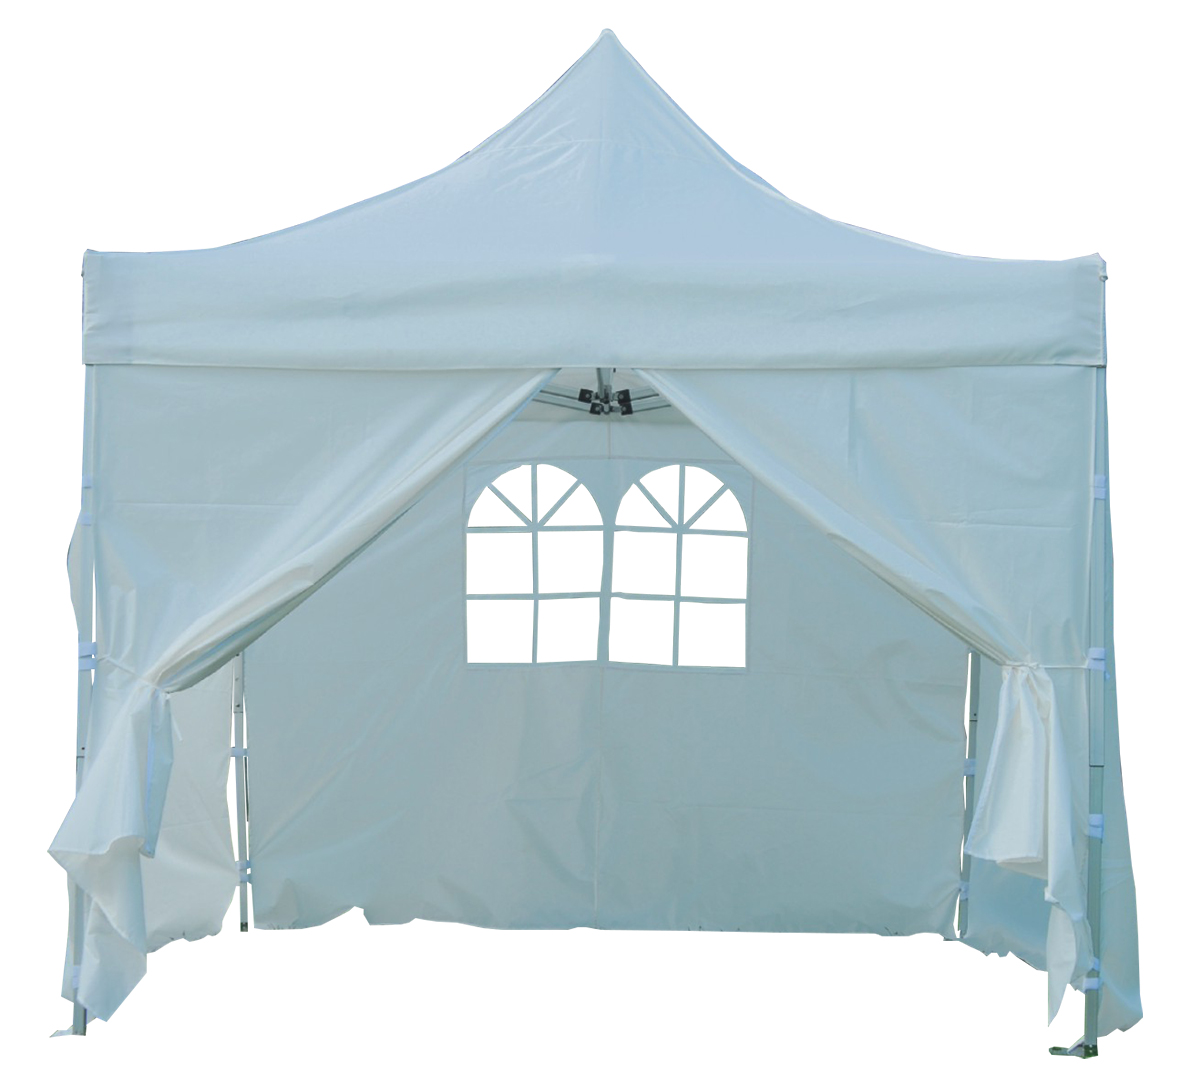 Metal Frame Folding Portable Luxury Garden Party Pop Up Outdoor Gazebo Tent With Canopy